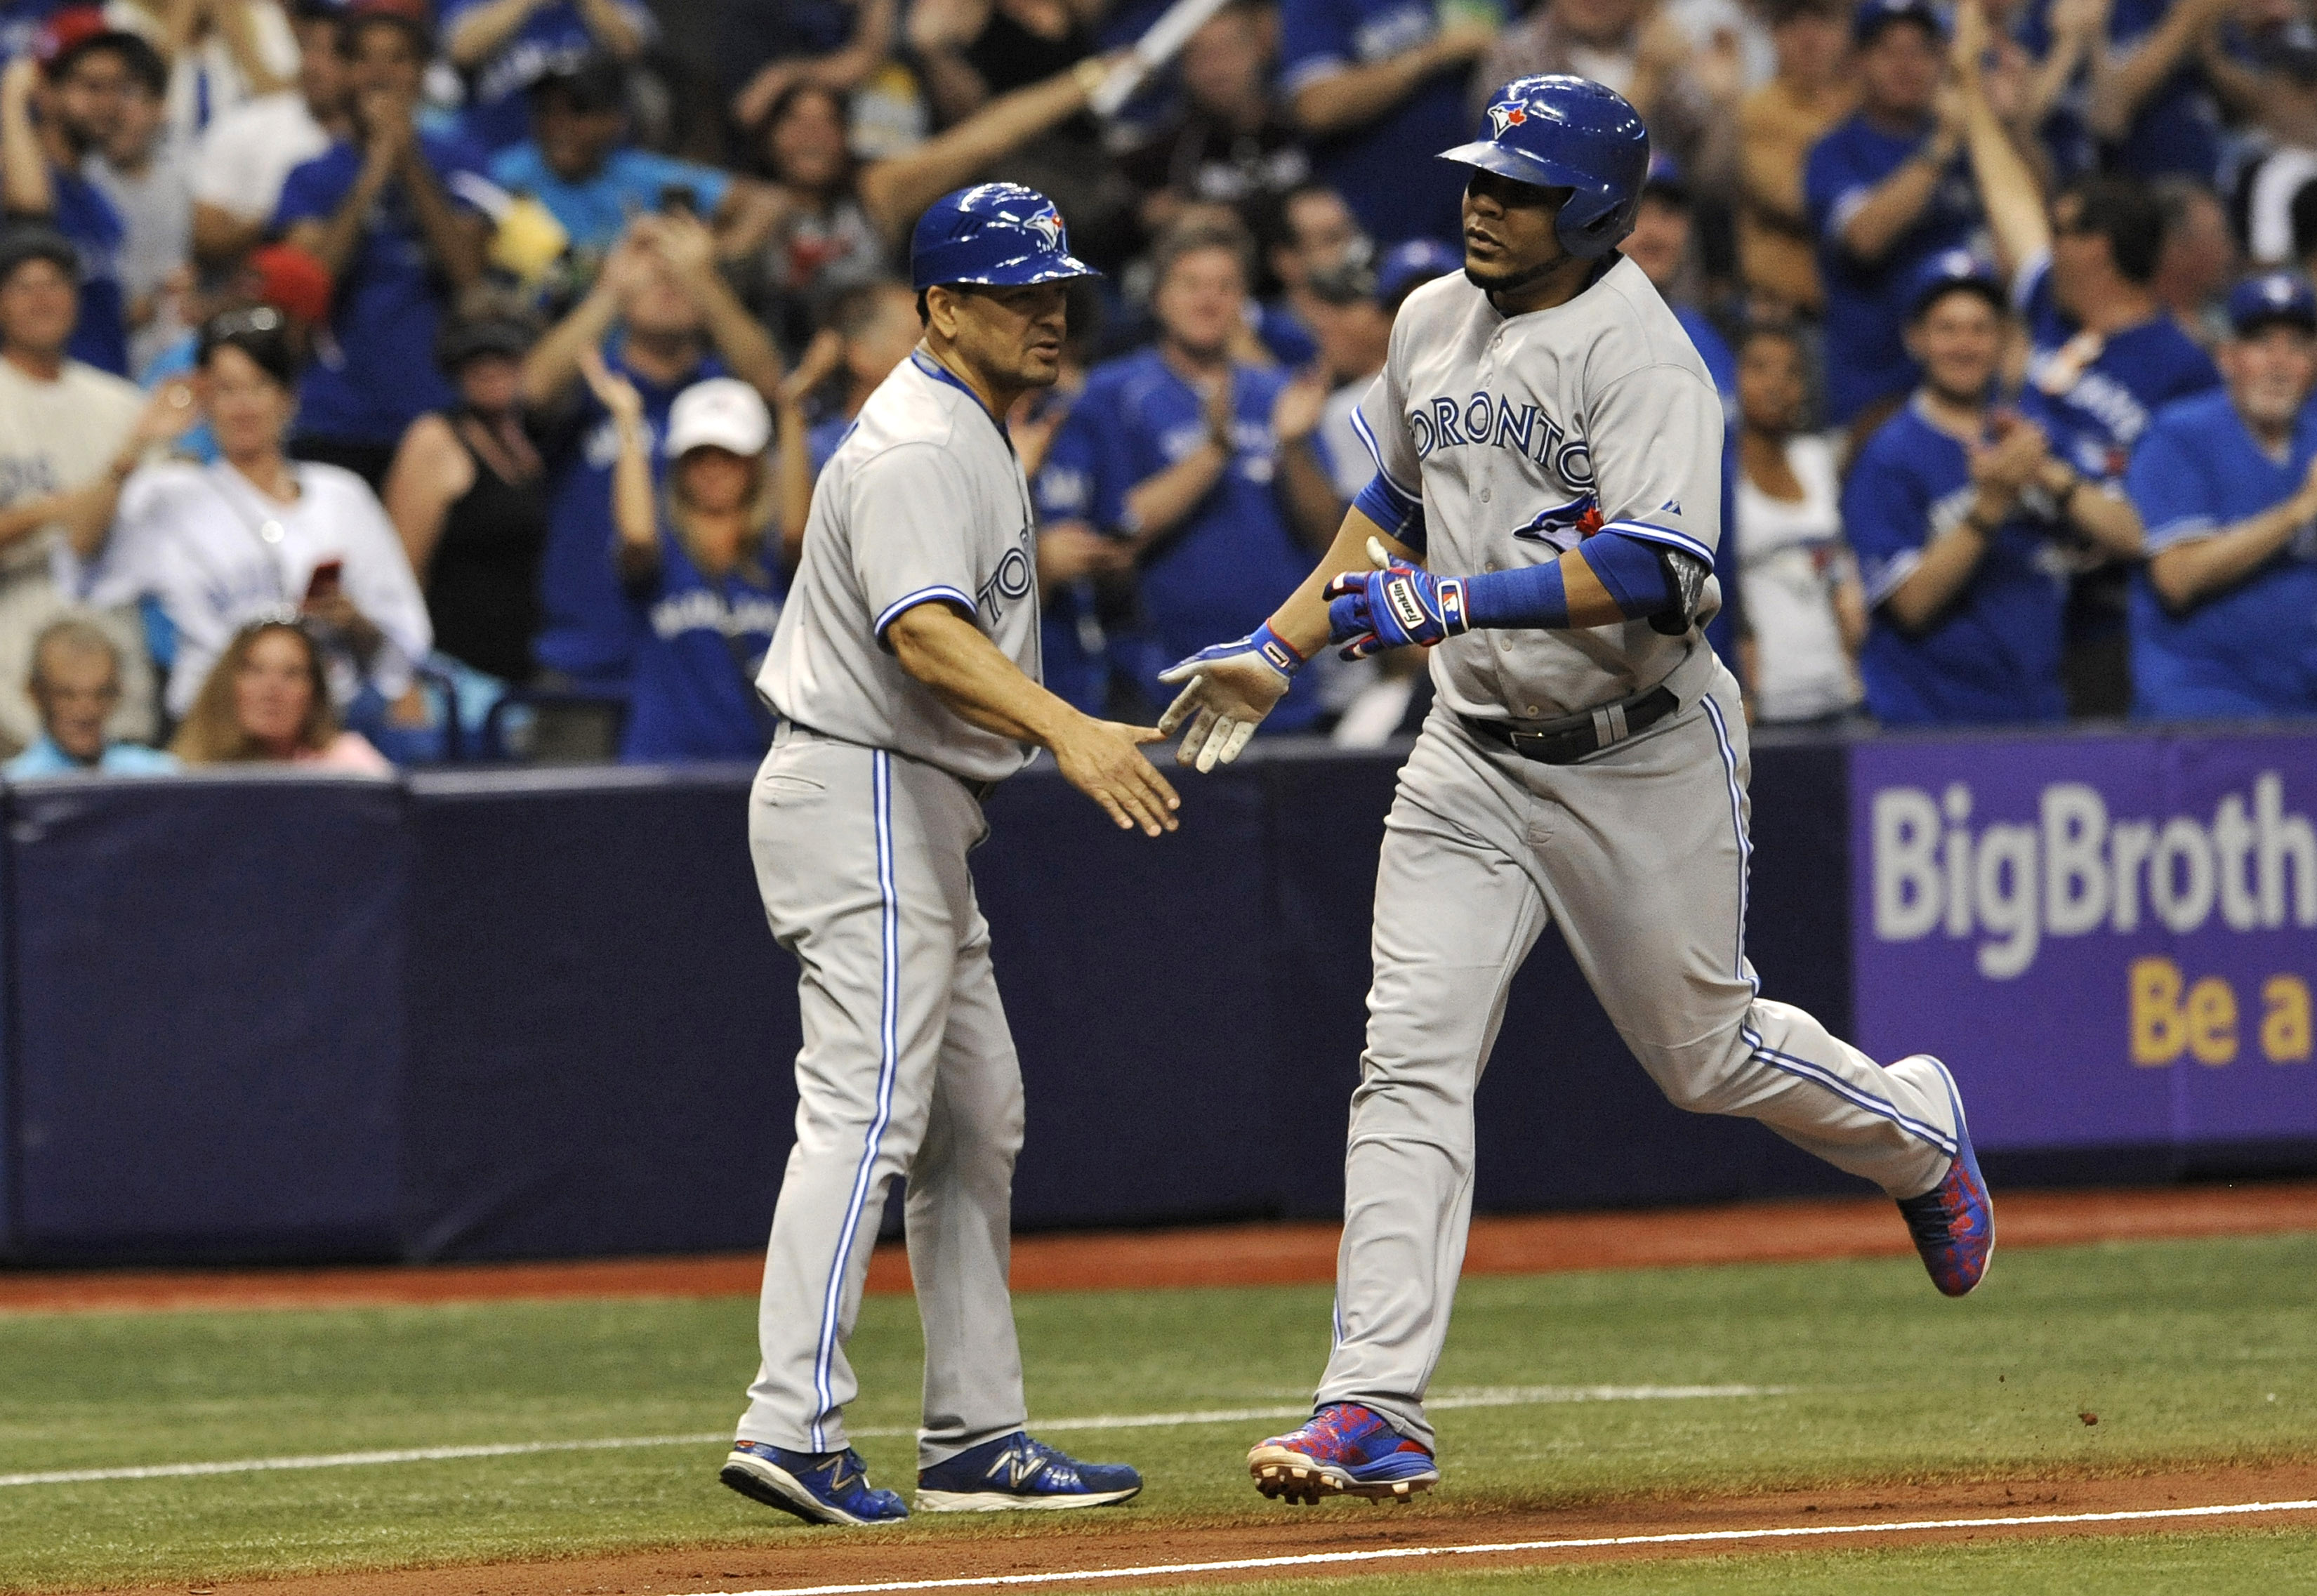 Toronto Blue Jays third base coach Luis Rivera, left, congratulates Edwin Encarnacion, right, as he circles the bases after hitting a two-run home run off Tampa Bay Rays reliever Brandon Gomes during the sixth inning of a baseball game Saturday, Oct. 3, 2